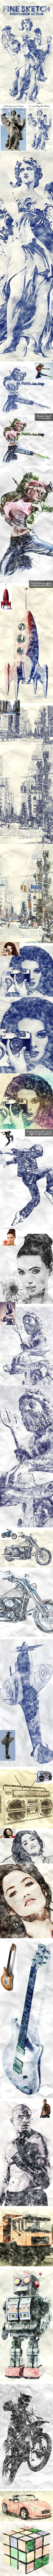 Fine Sketch Photoshop Action   • Only available here! → https://graphicriver.net/item/fine-sketch-photoshop-action/17216430?ref=pxcr